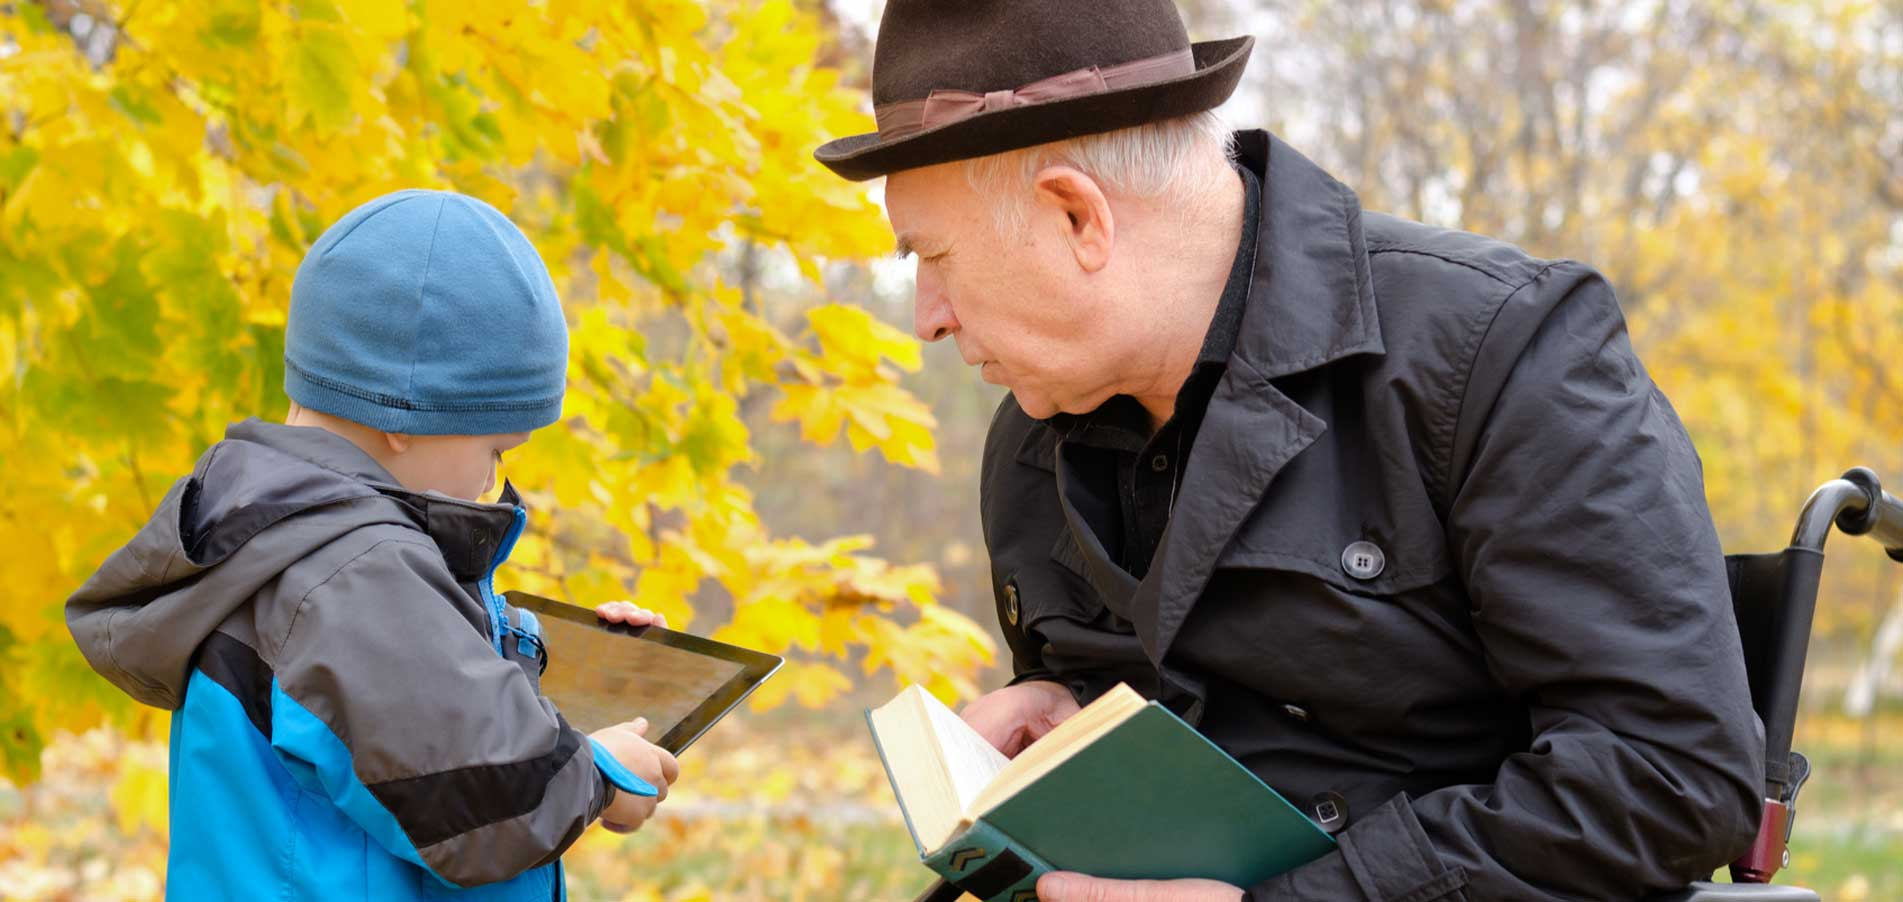 Grandson and grandfather reading books